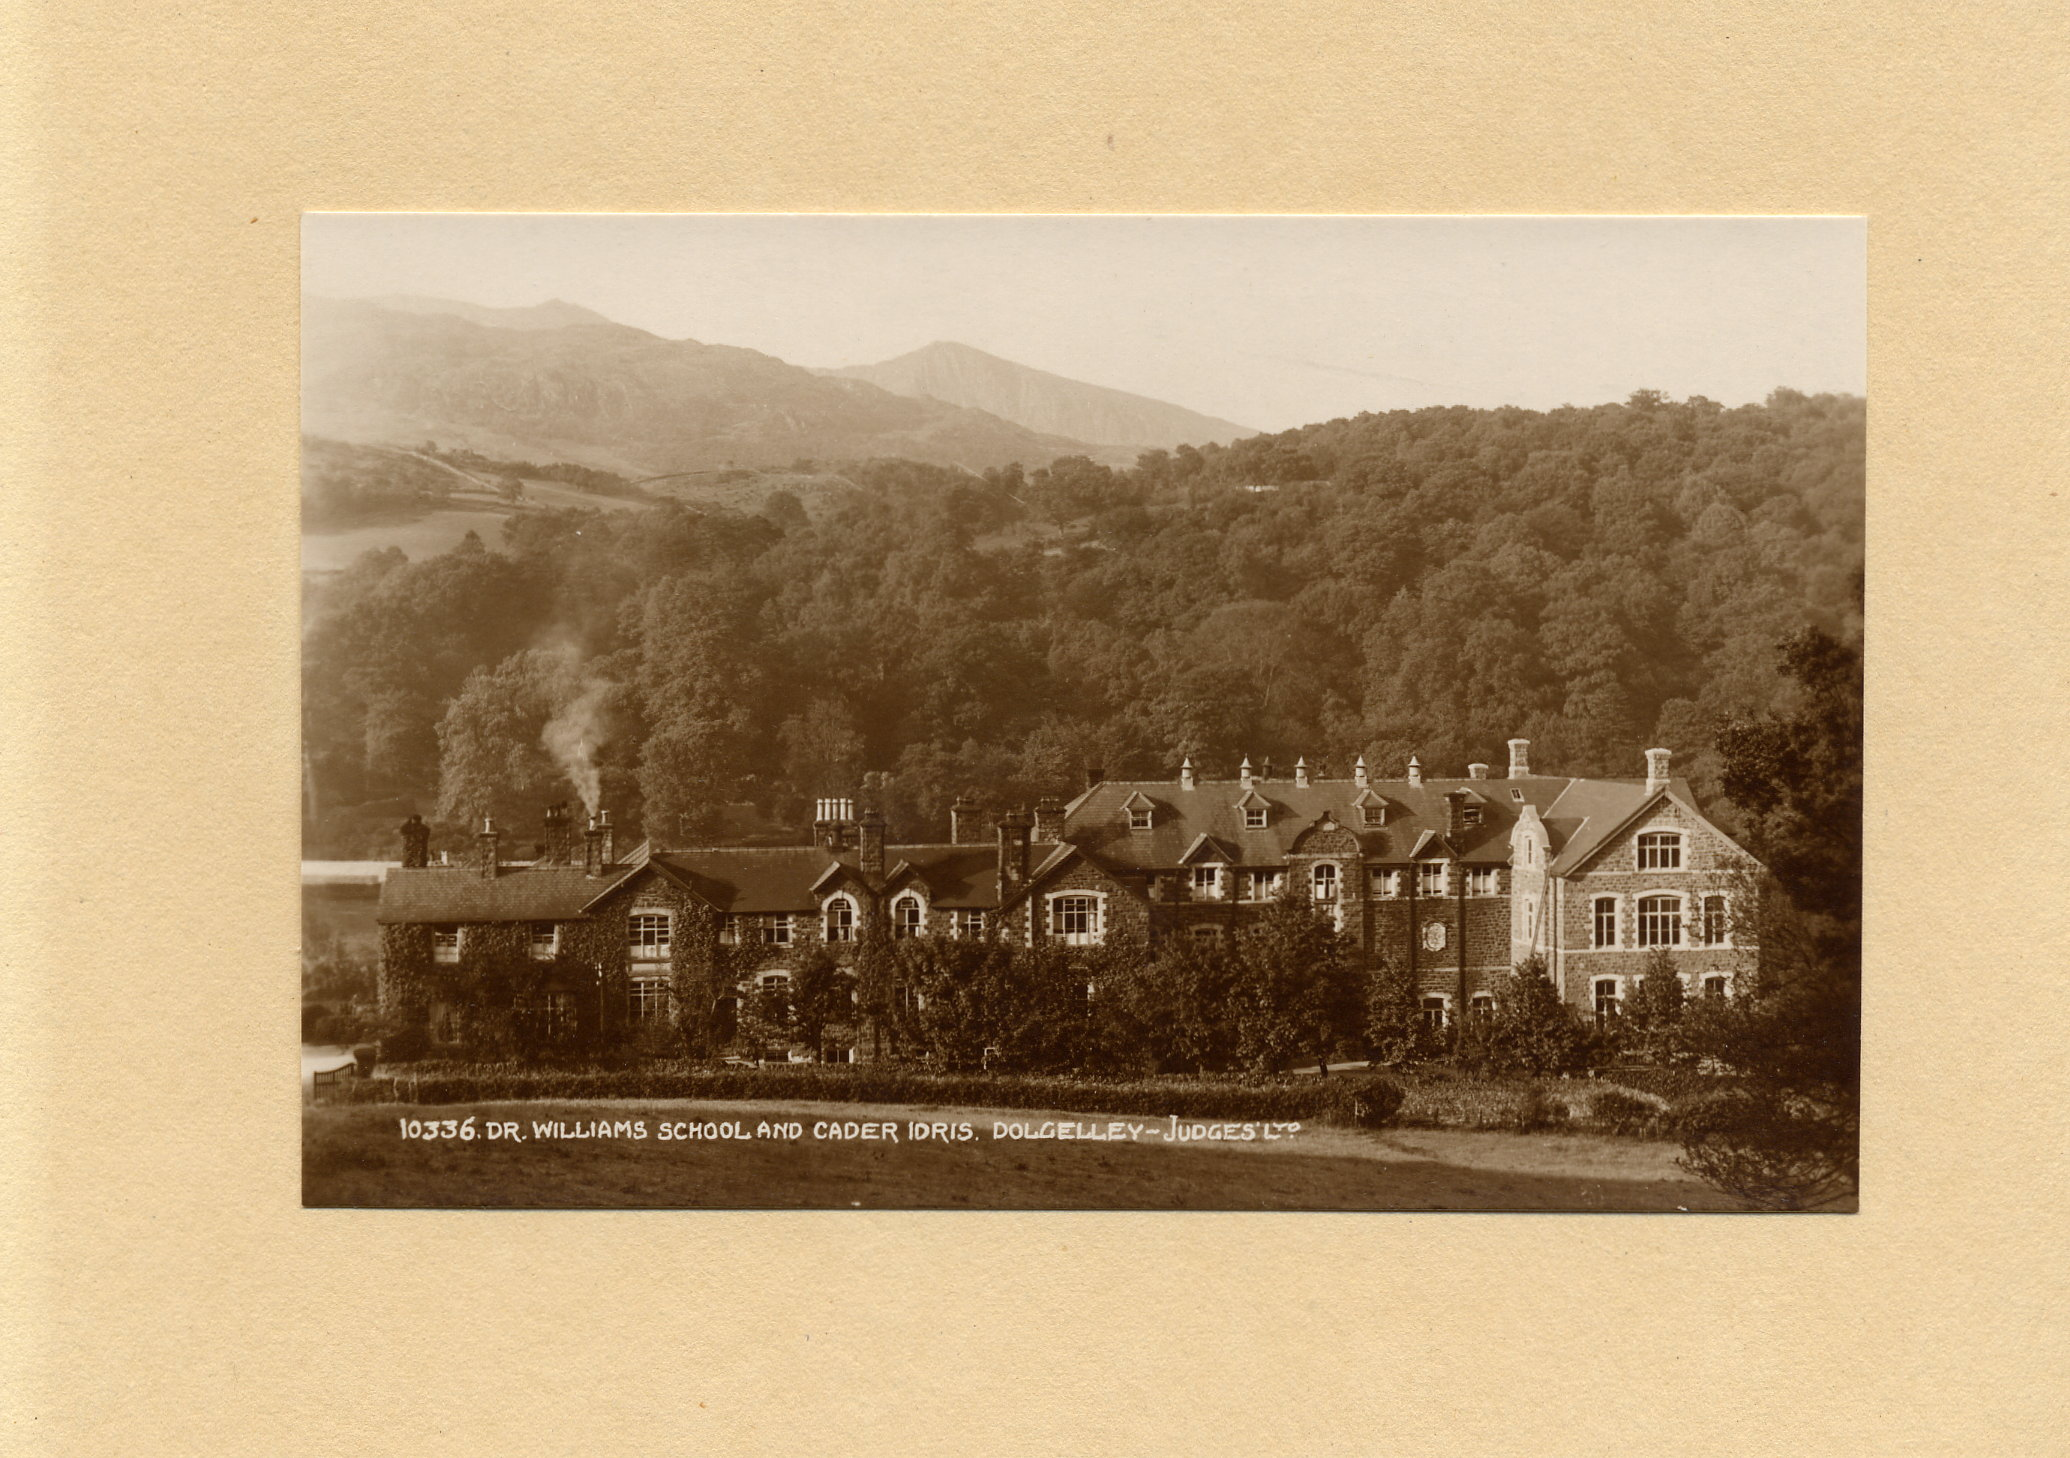 View of Dr Williams' School and Cader Idris